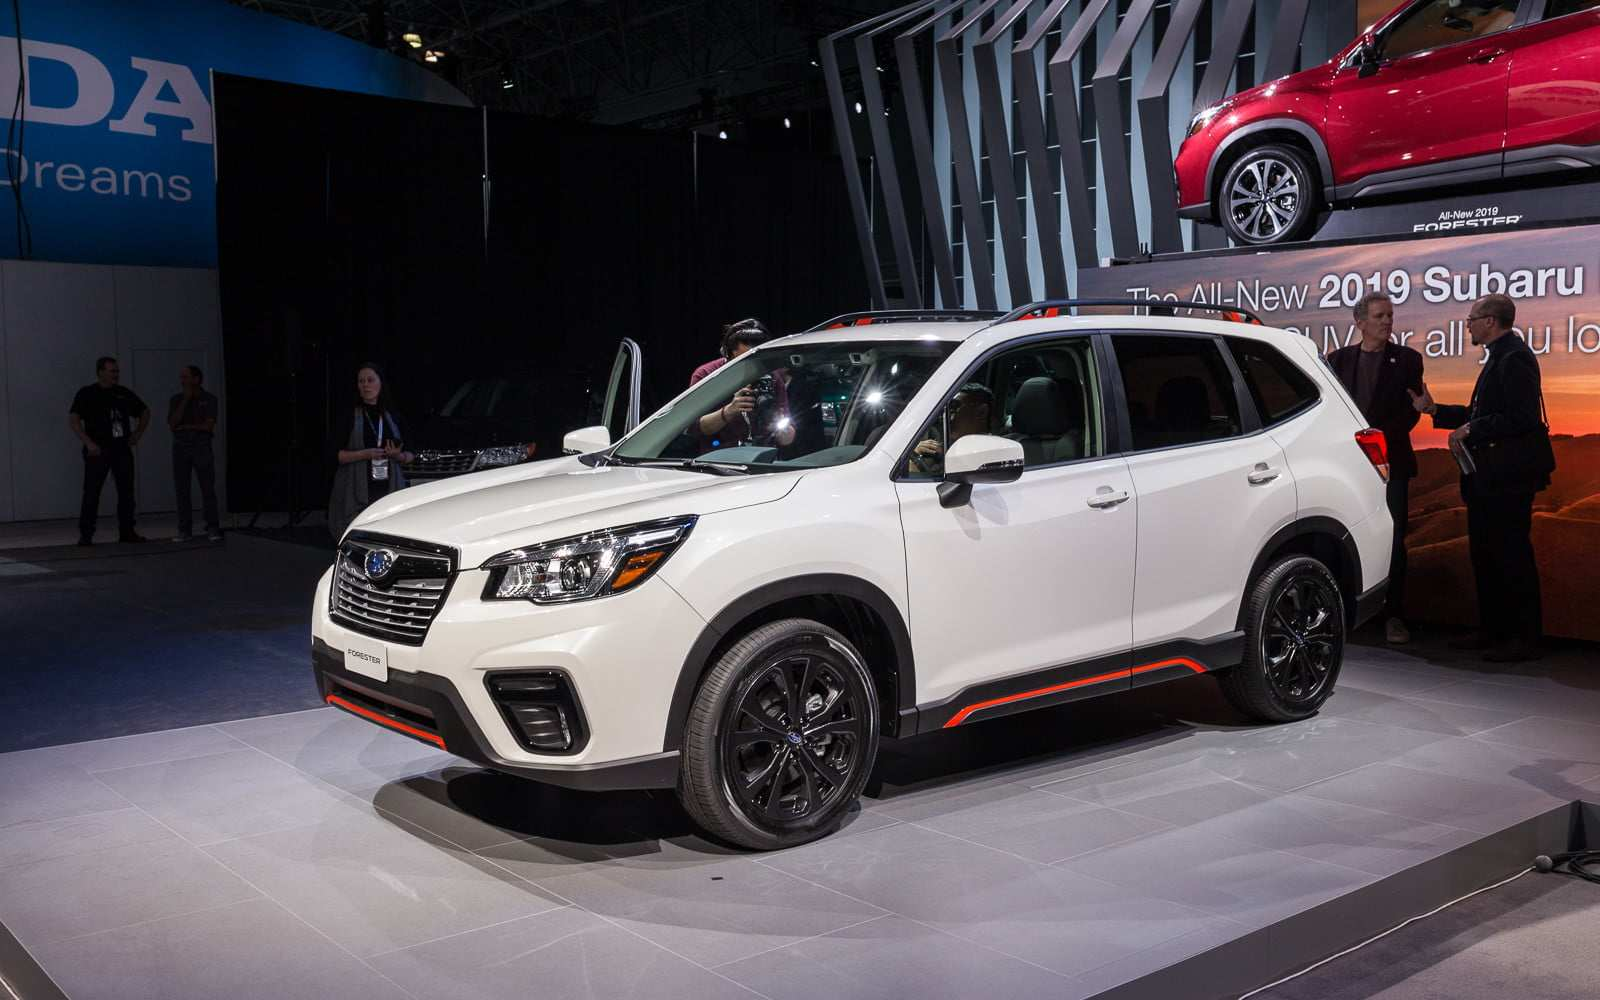 95 The 2019 Subaru Outback Next Generation New Model and Performance